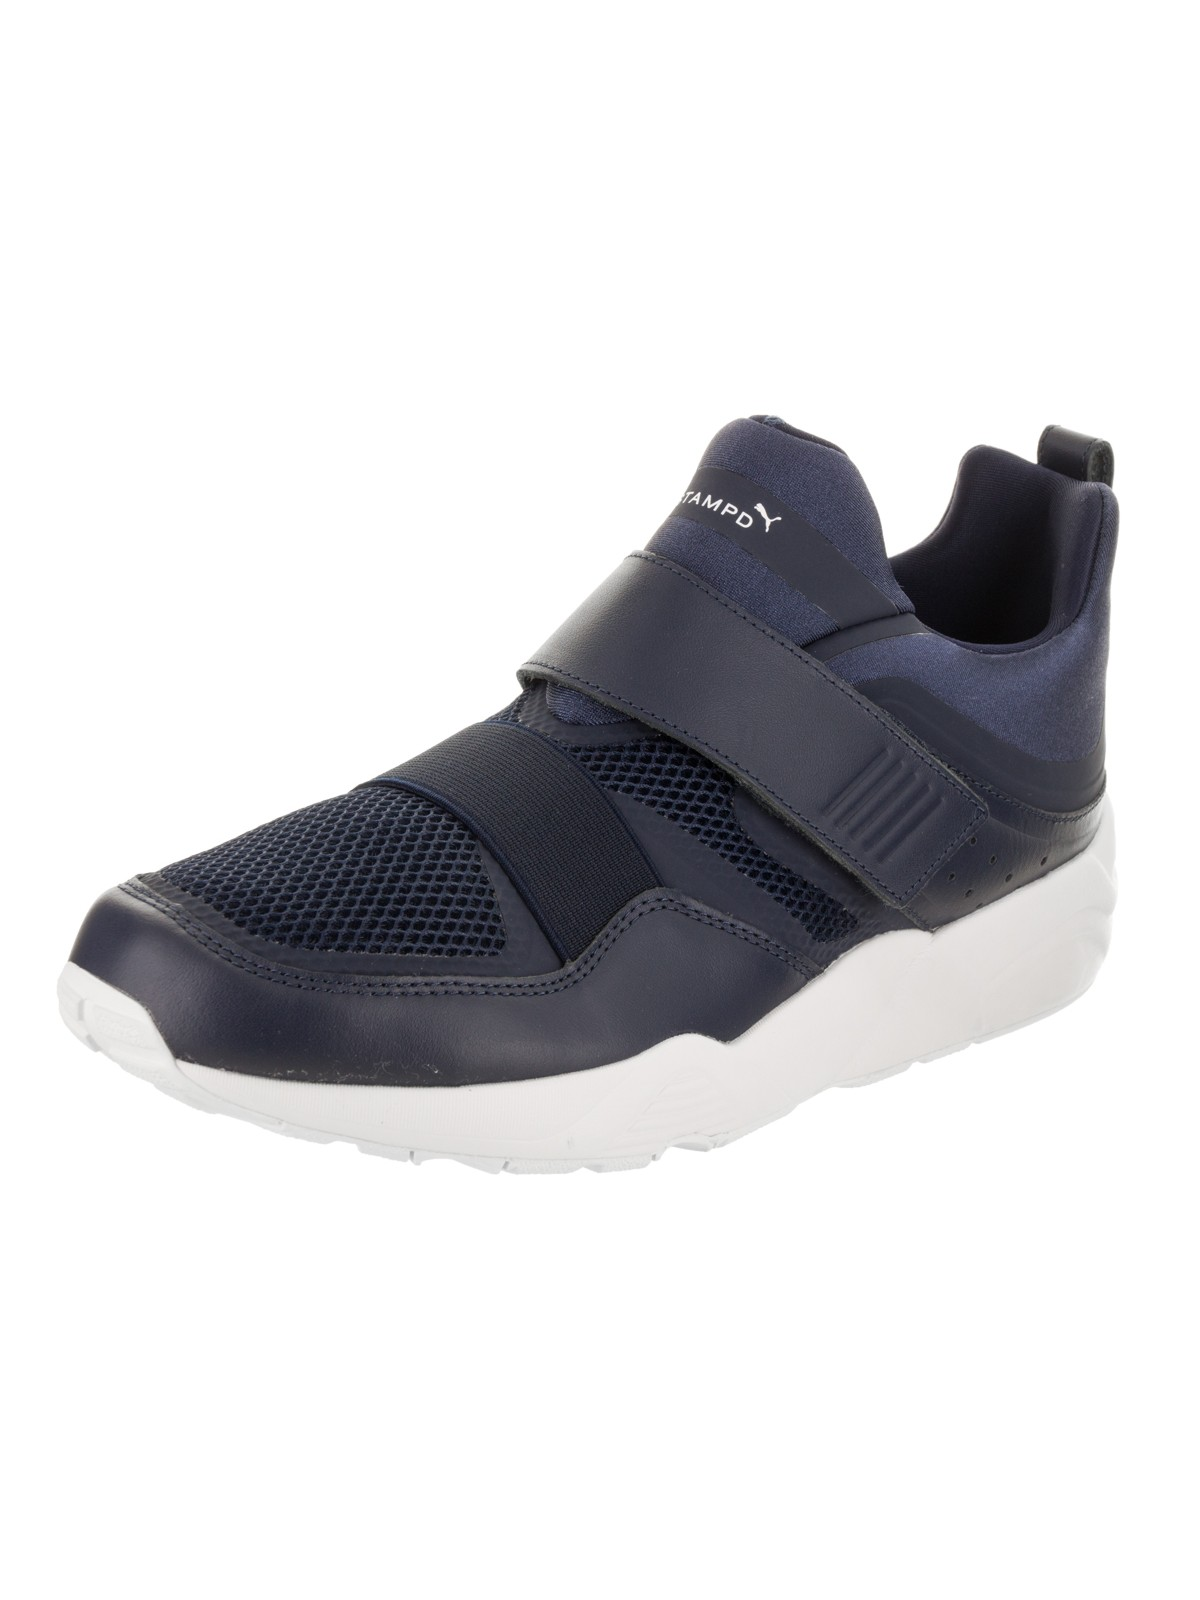 a9db697f8234 Puma Men s Blaze of Glory Strap X Stampd Casual Shoe